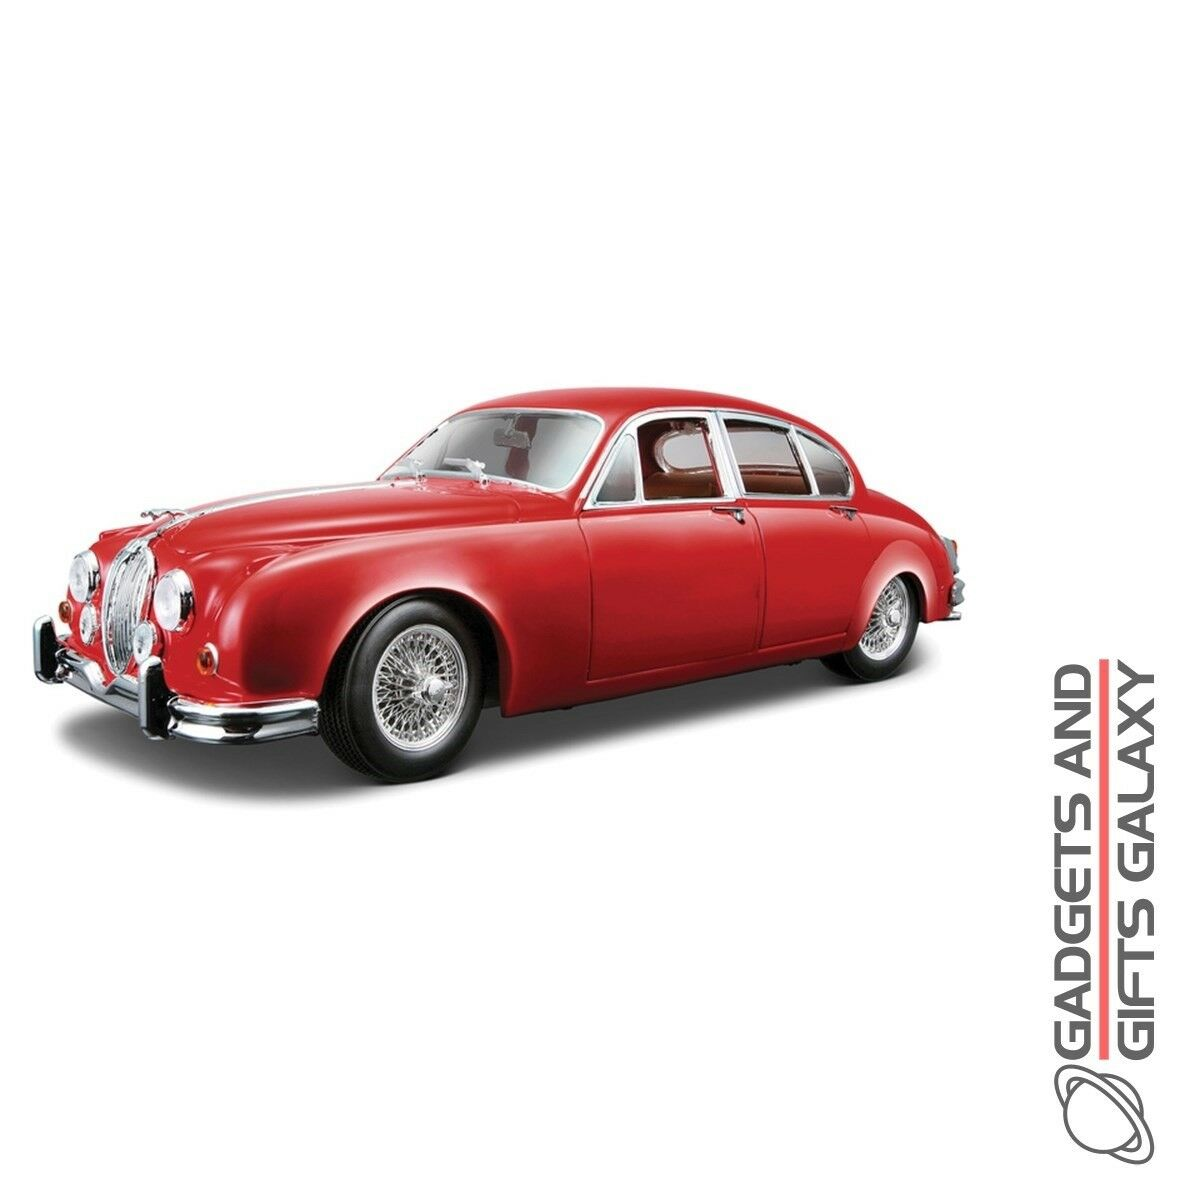 1 18 1959 Jaguar Mark ll Model Replica Car Vehicle Red Diecast Vintage Toy